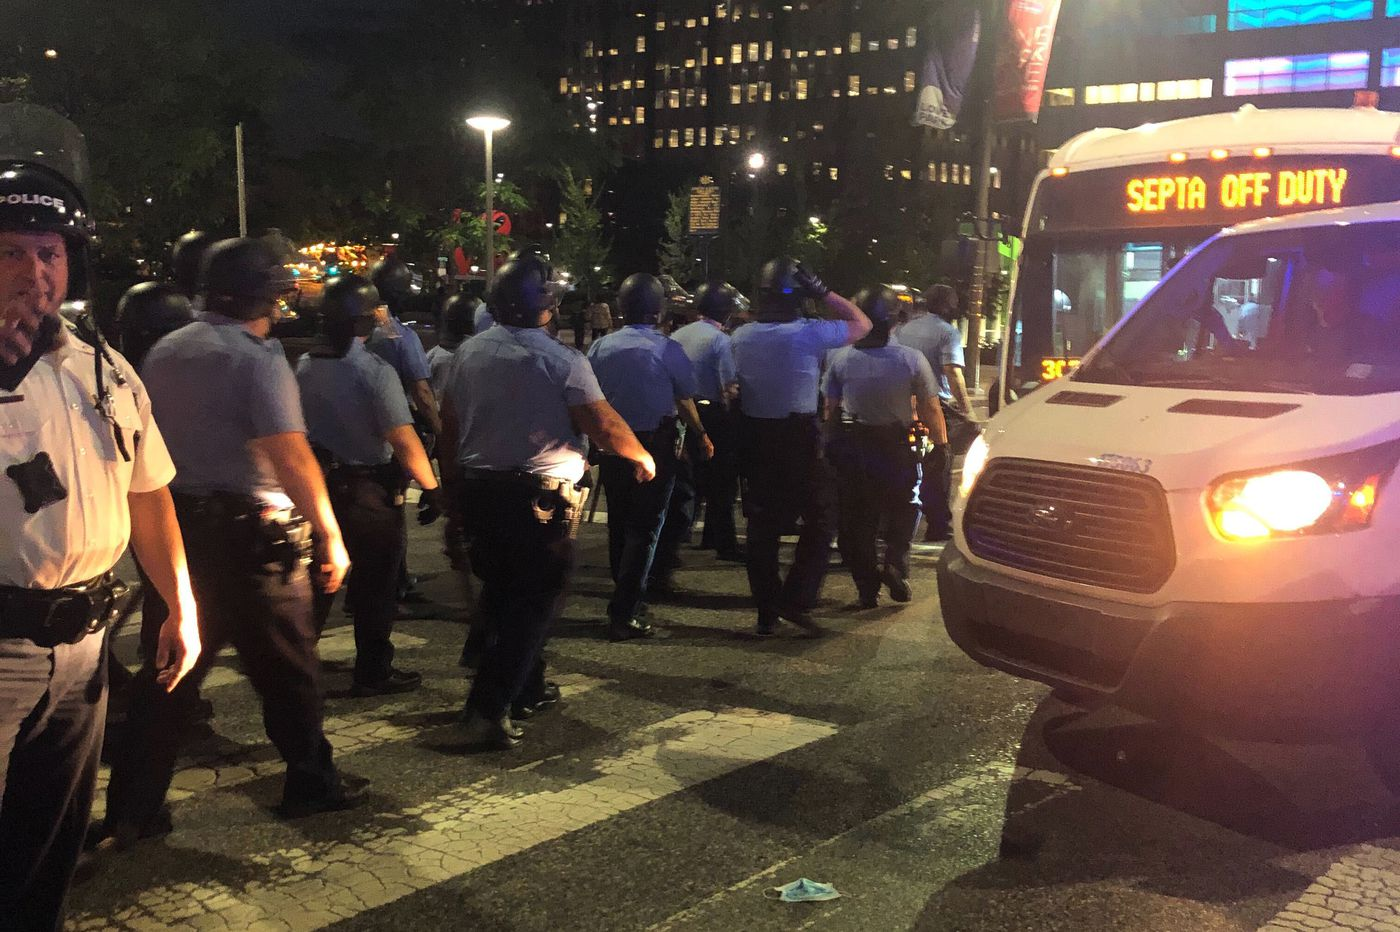 SEPTA is transporting busloads of Philly police to help control the protests